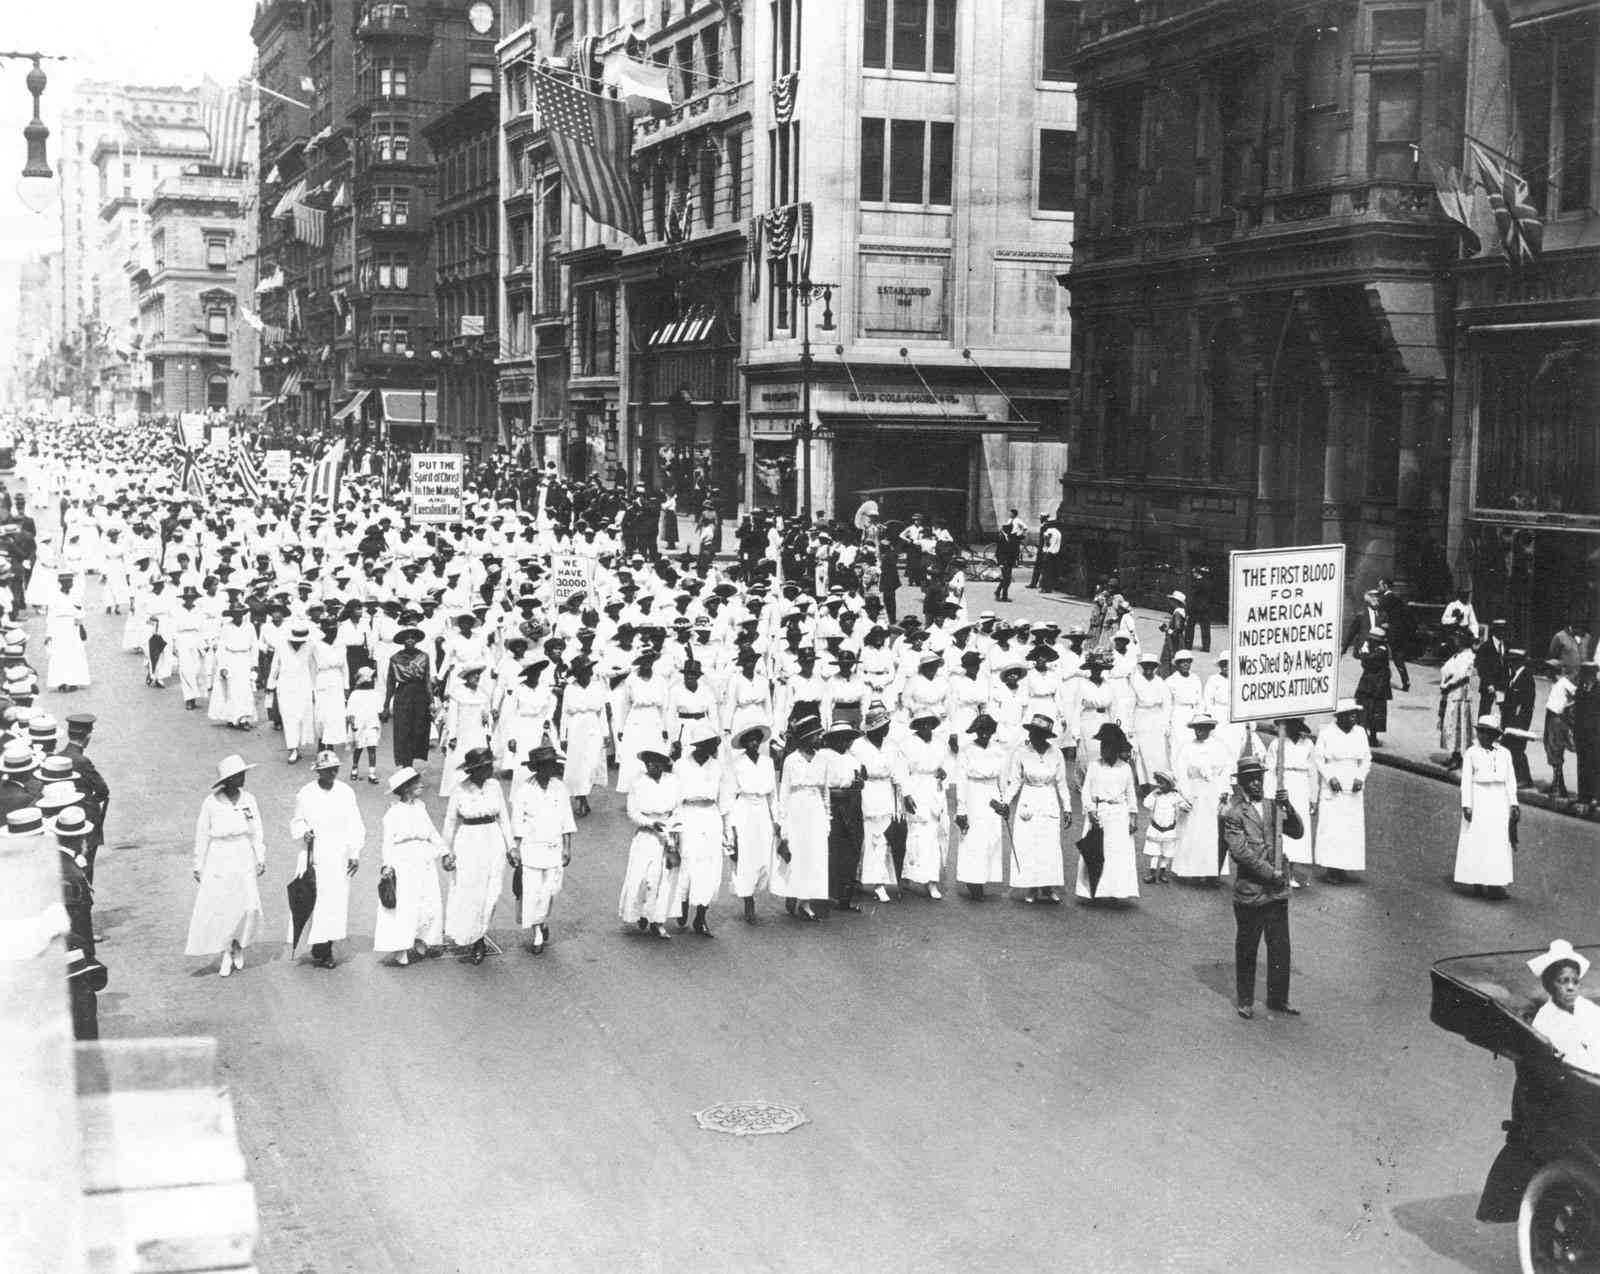 The Silent Parade of 1917.